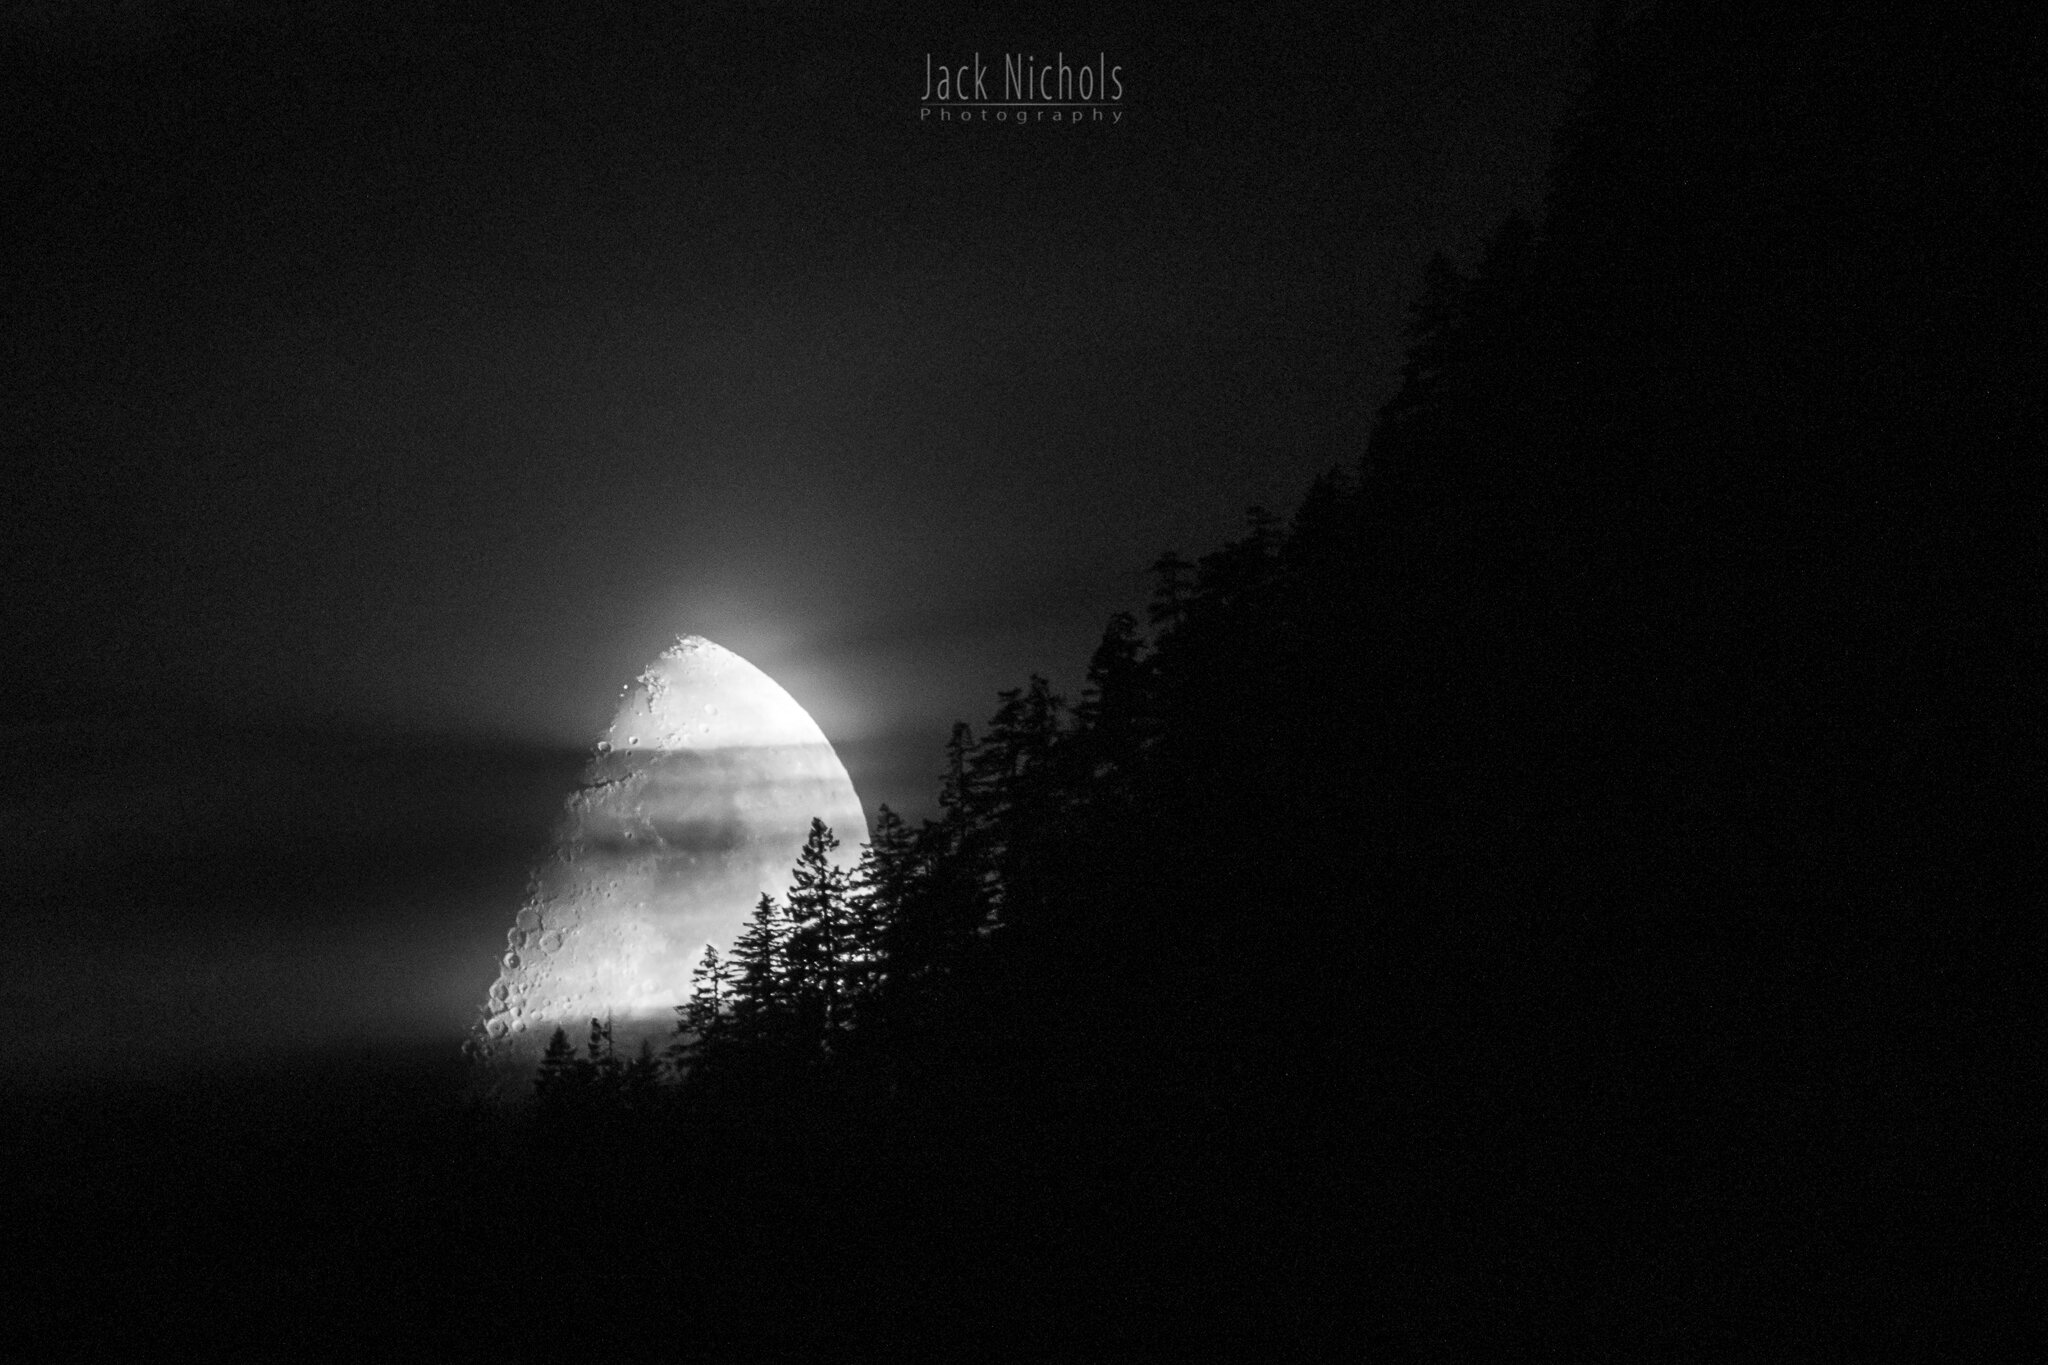 Campbell River, Buttle Lake - Moon setting over distant mountain with trees in silhouette-20190907.jpg